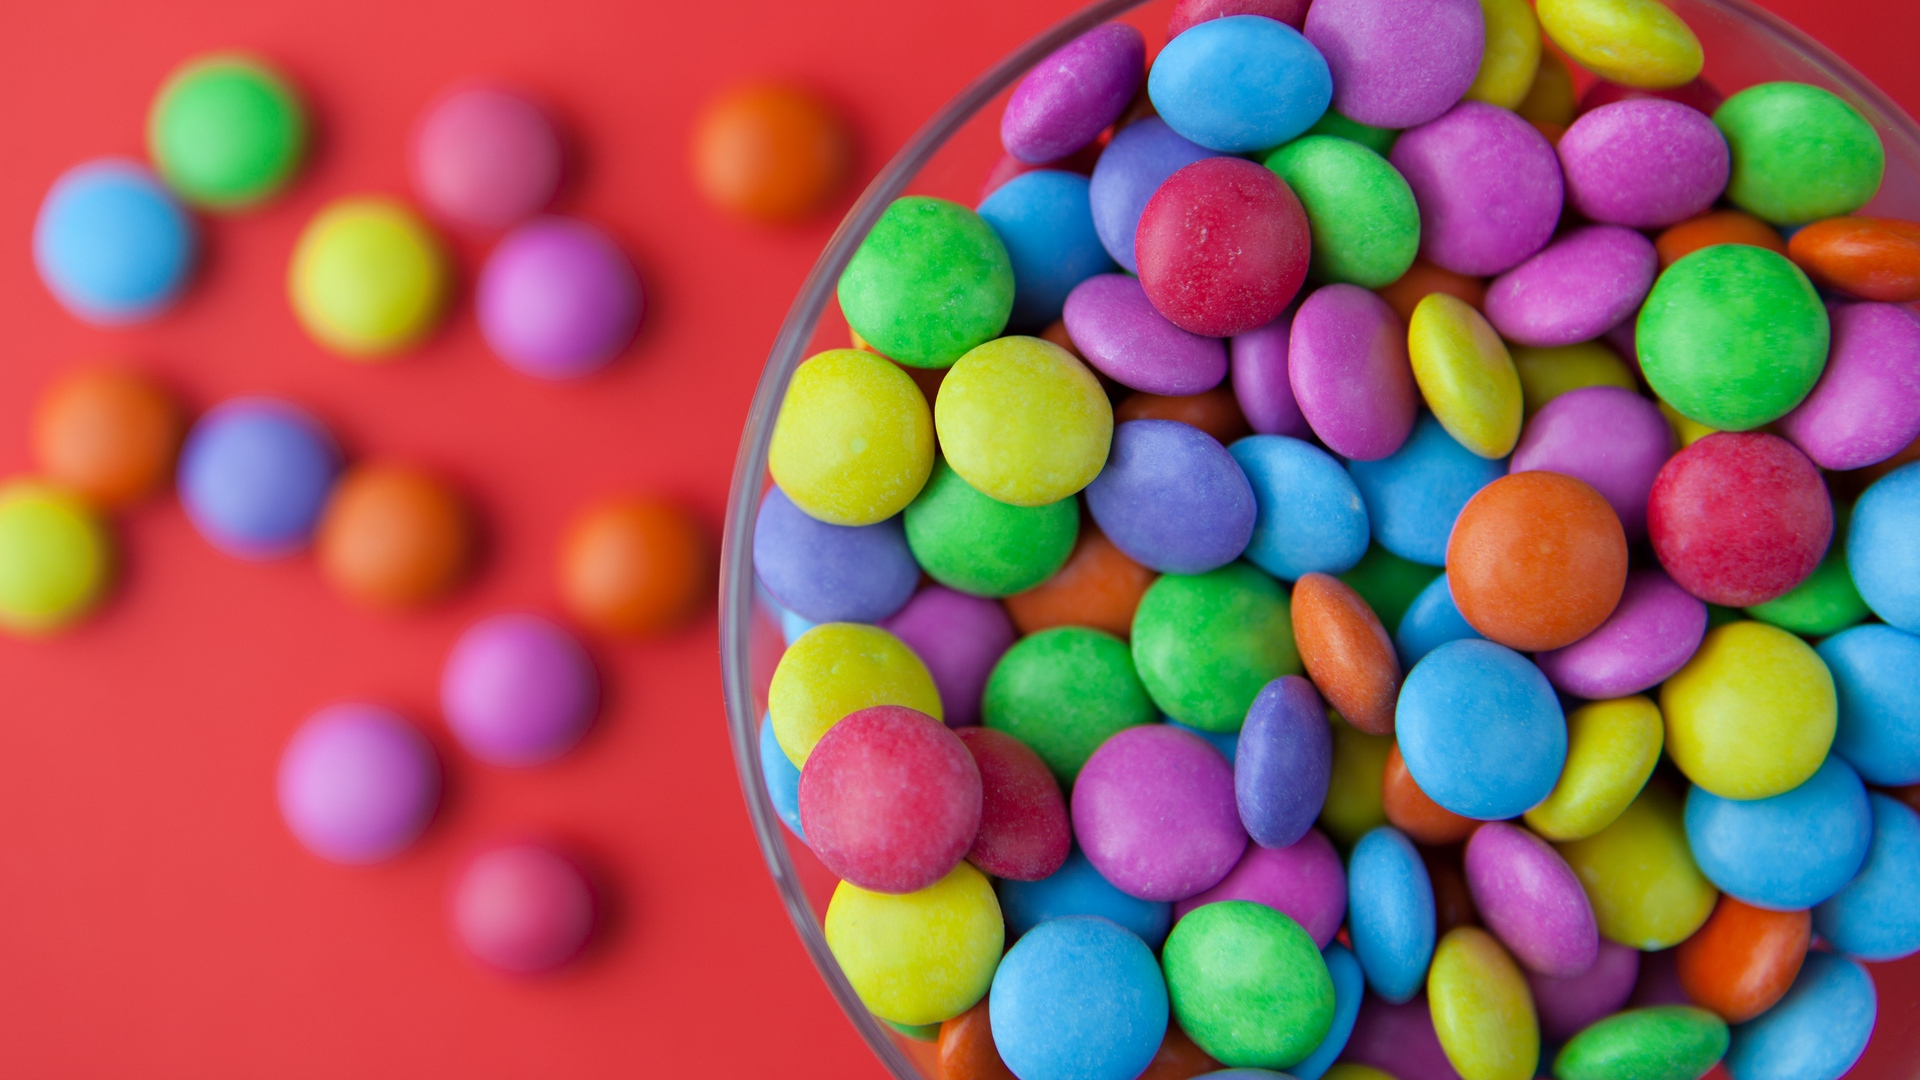 Colorful Candy HD Wallpaper   Wallpaper Stream 1920x1080